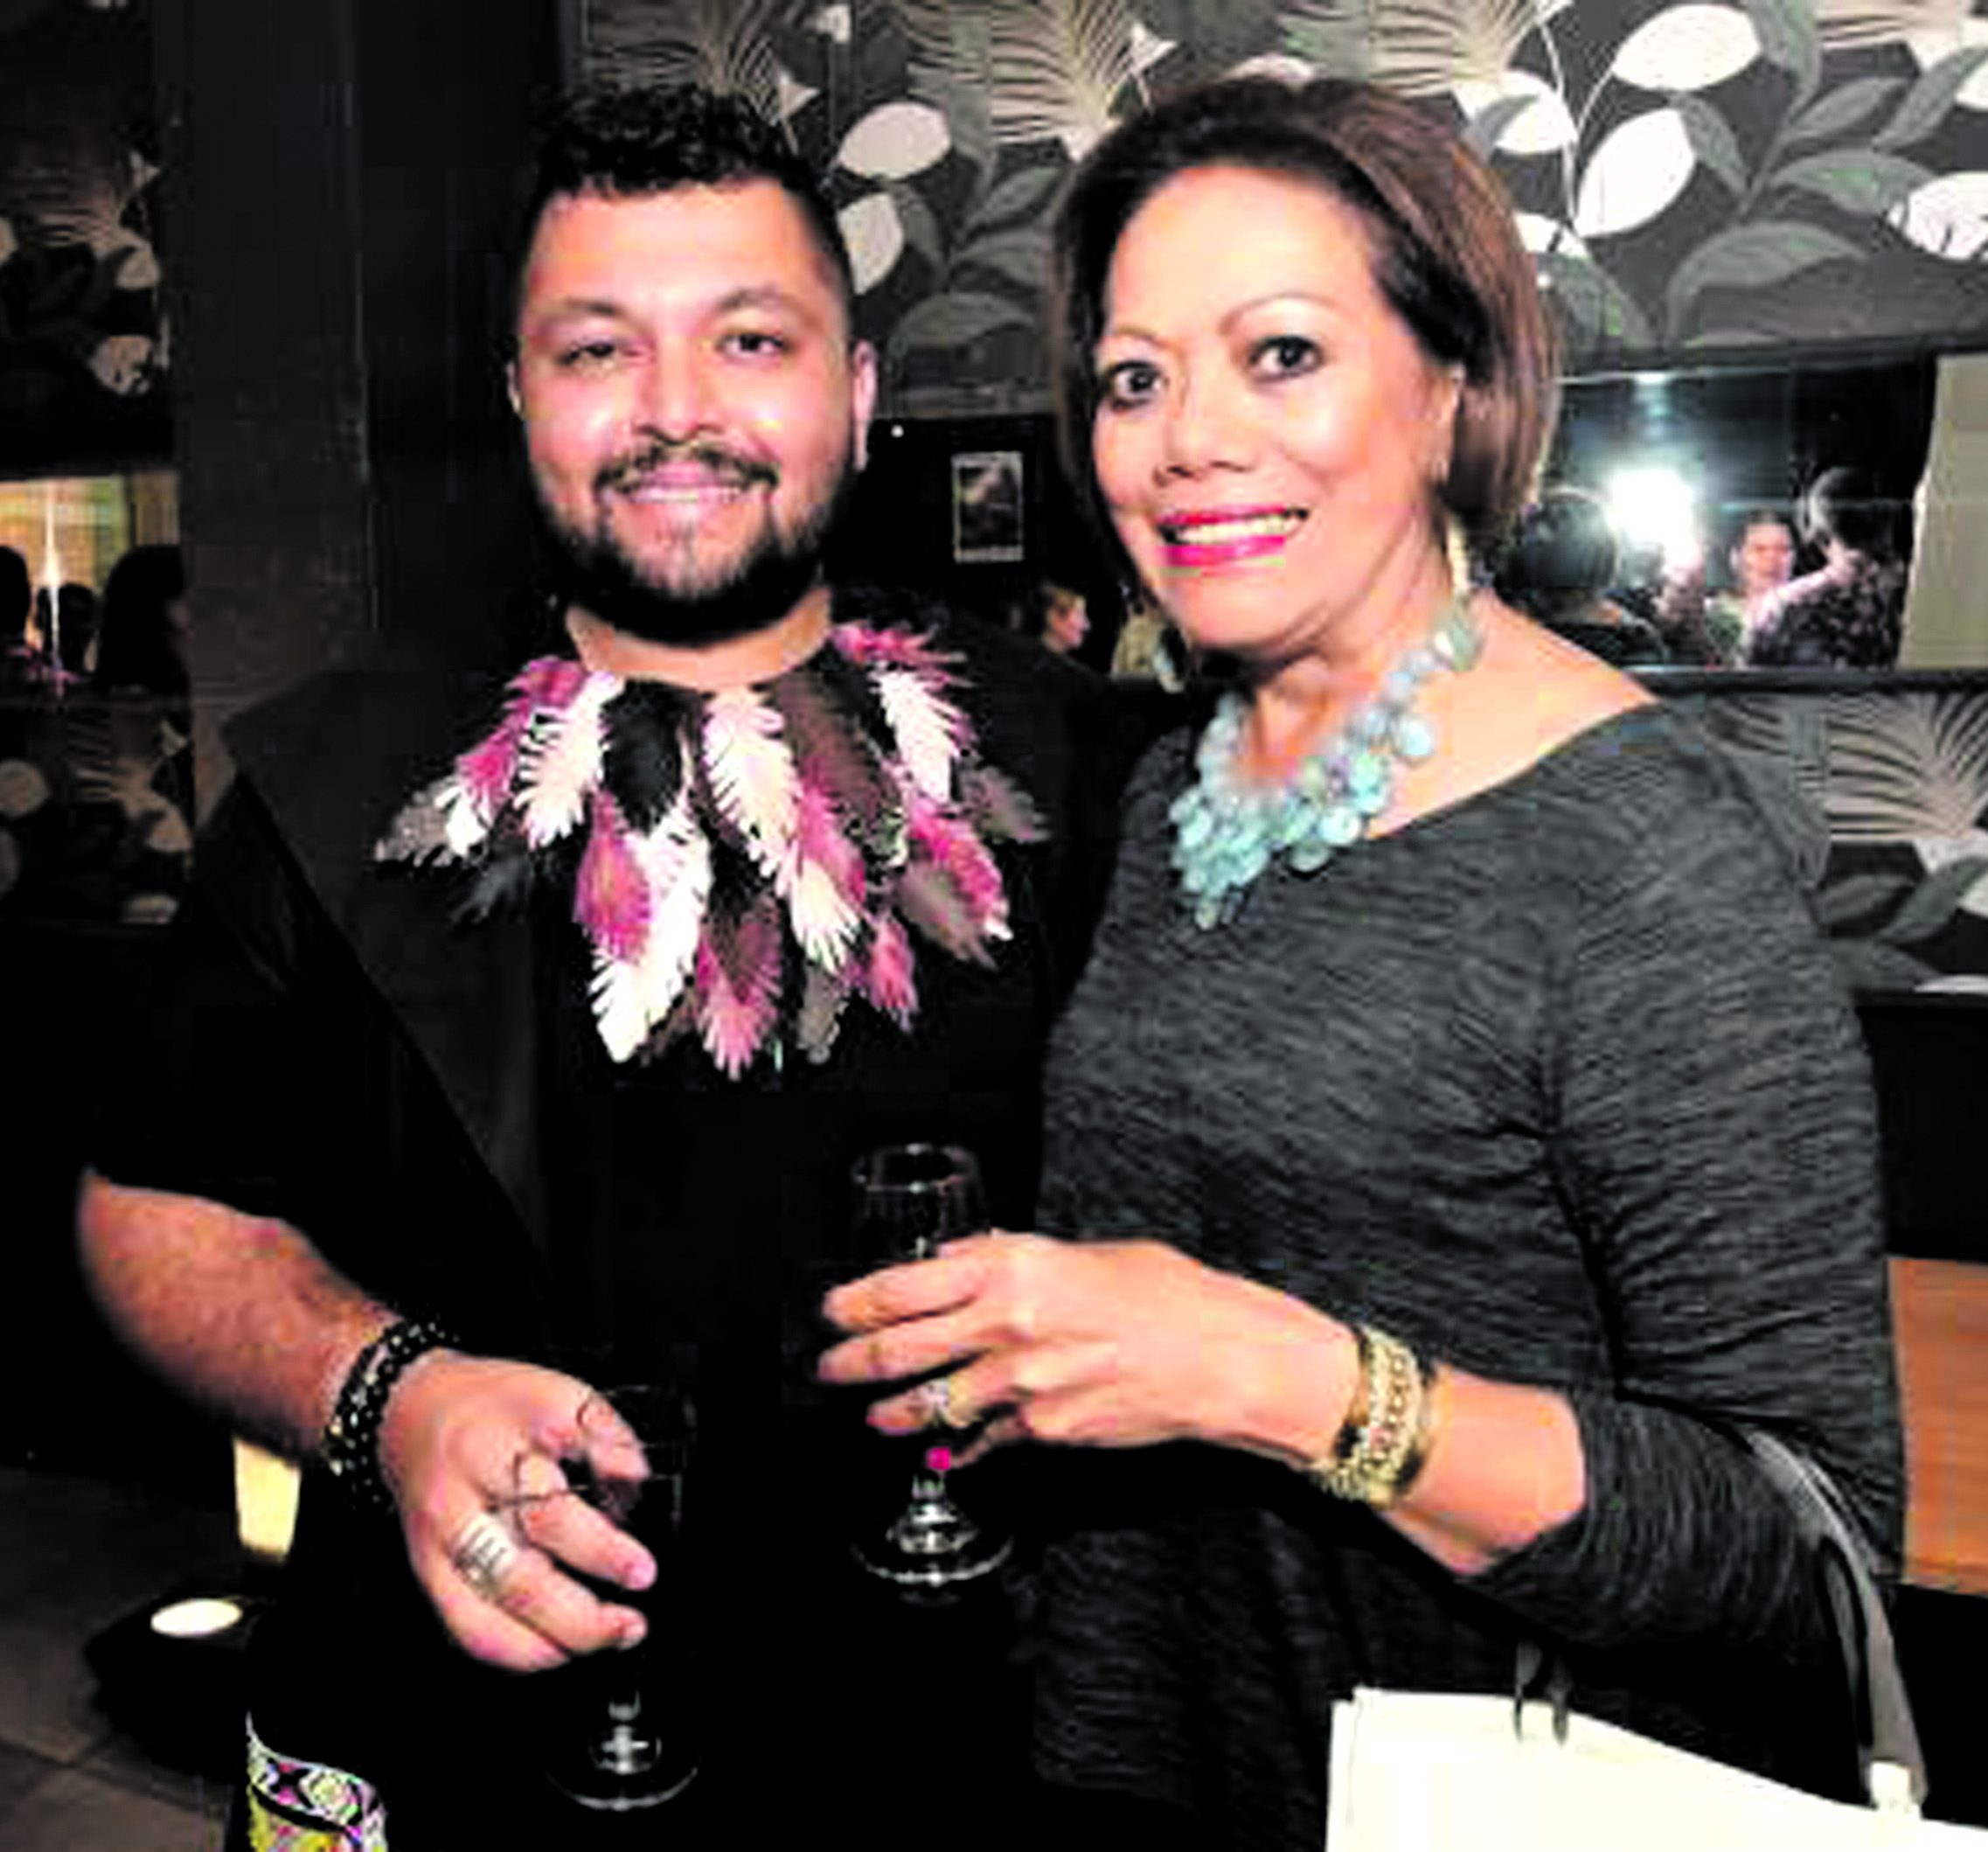 Faraz Ali Chairperson Fashion Council of Fiji and Fijian Fashion Festival Trustee (left), with Industry Pioneer and Fijian Fashion Festival Supporter Anna Sweetman.